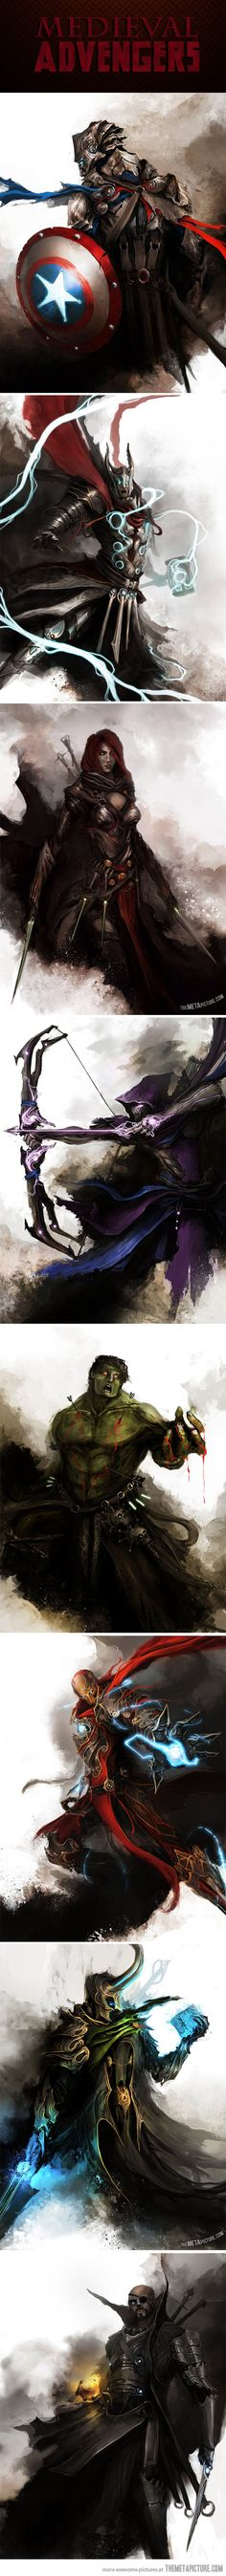 "Amazing Medieval Avengers… ✮✮Feel free to share on Pinterest"" ♥ღ www.unocollectibles.com"